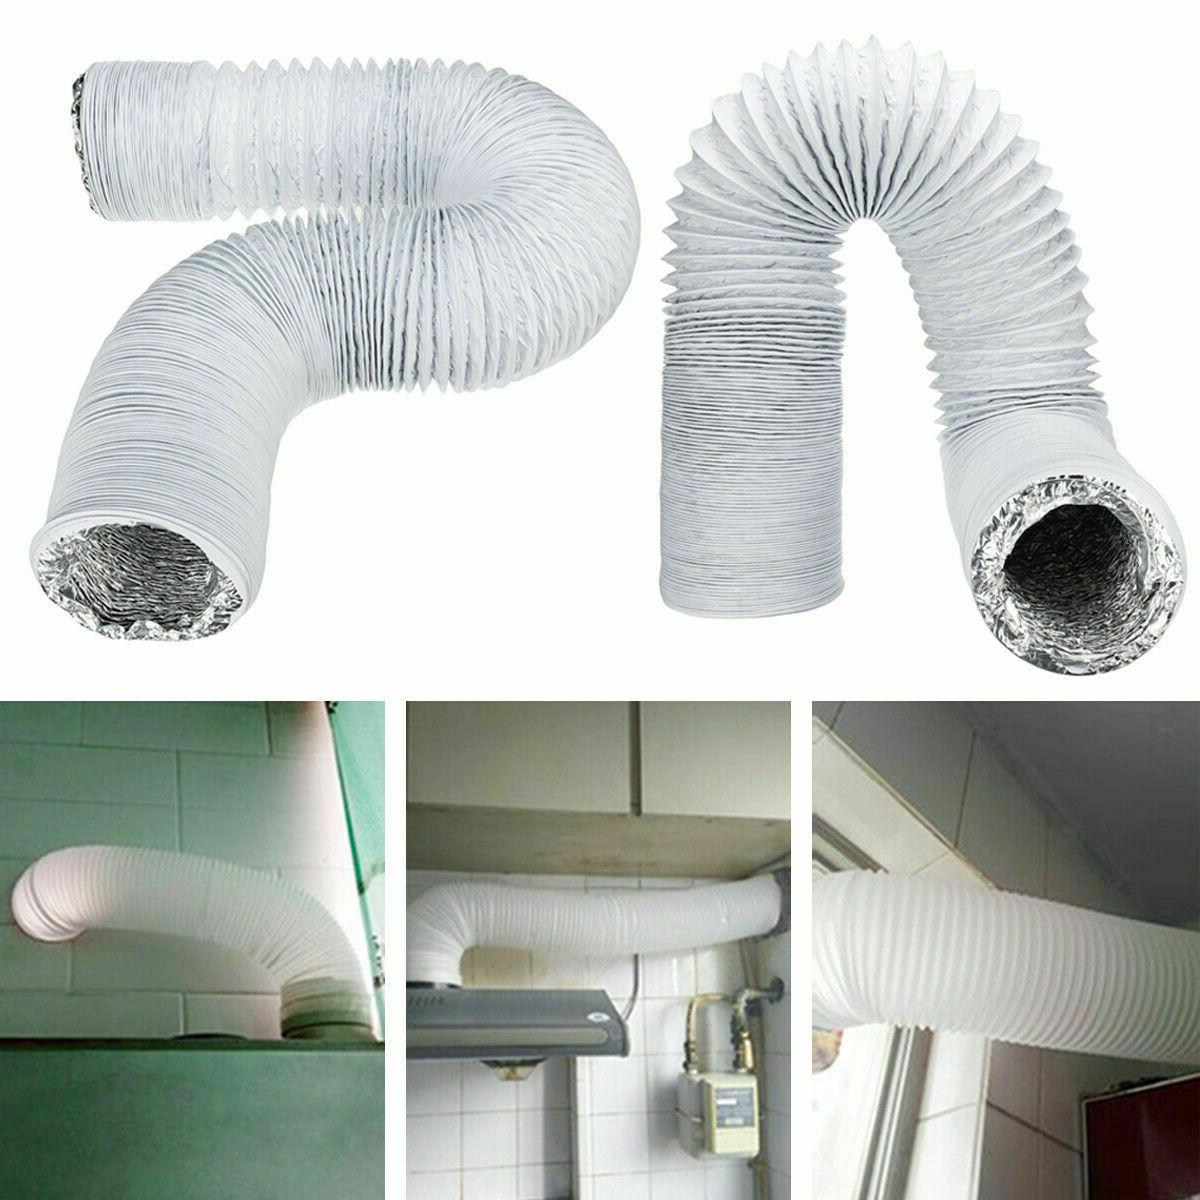 5inch exhaust hose pvc flexible ducting air